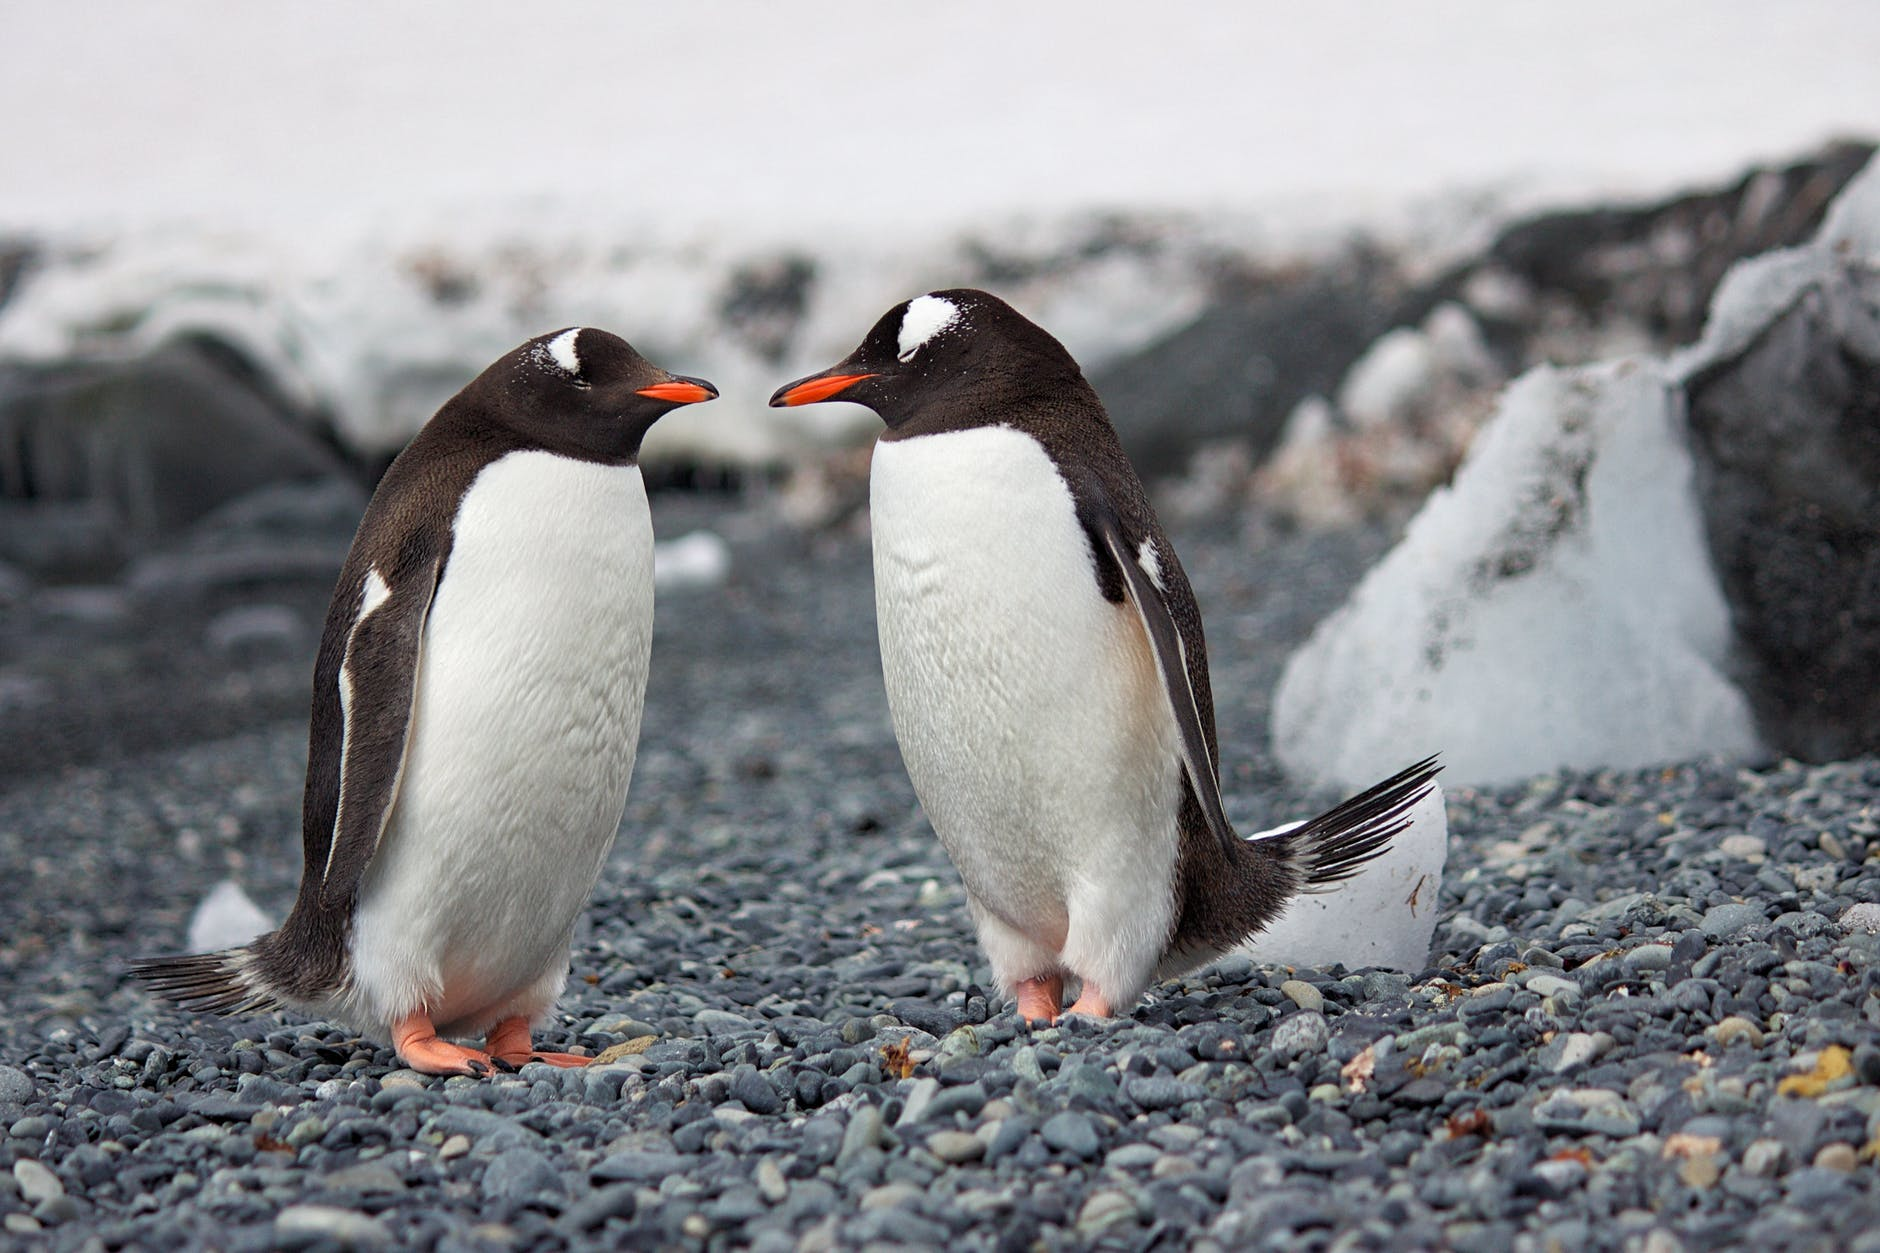 selective focus photography of two penguins